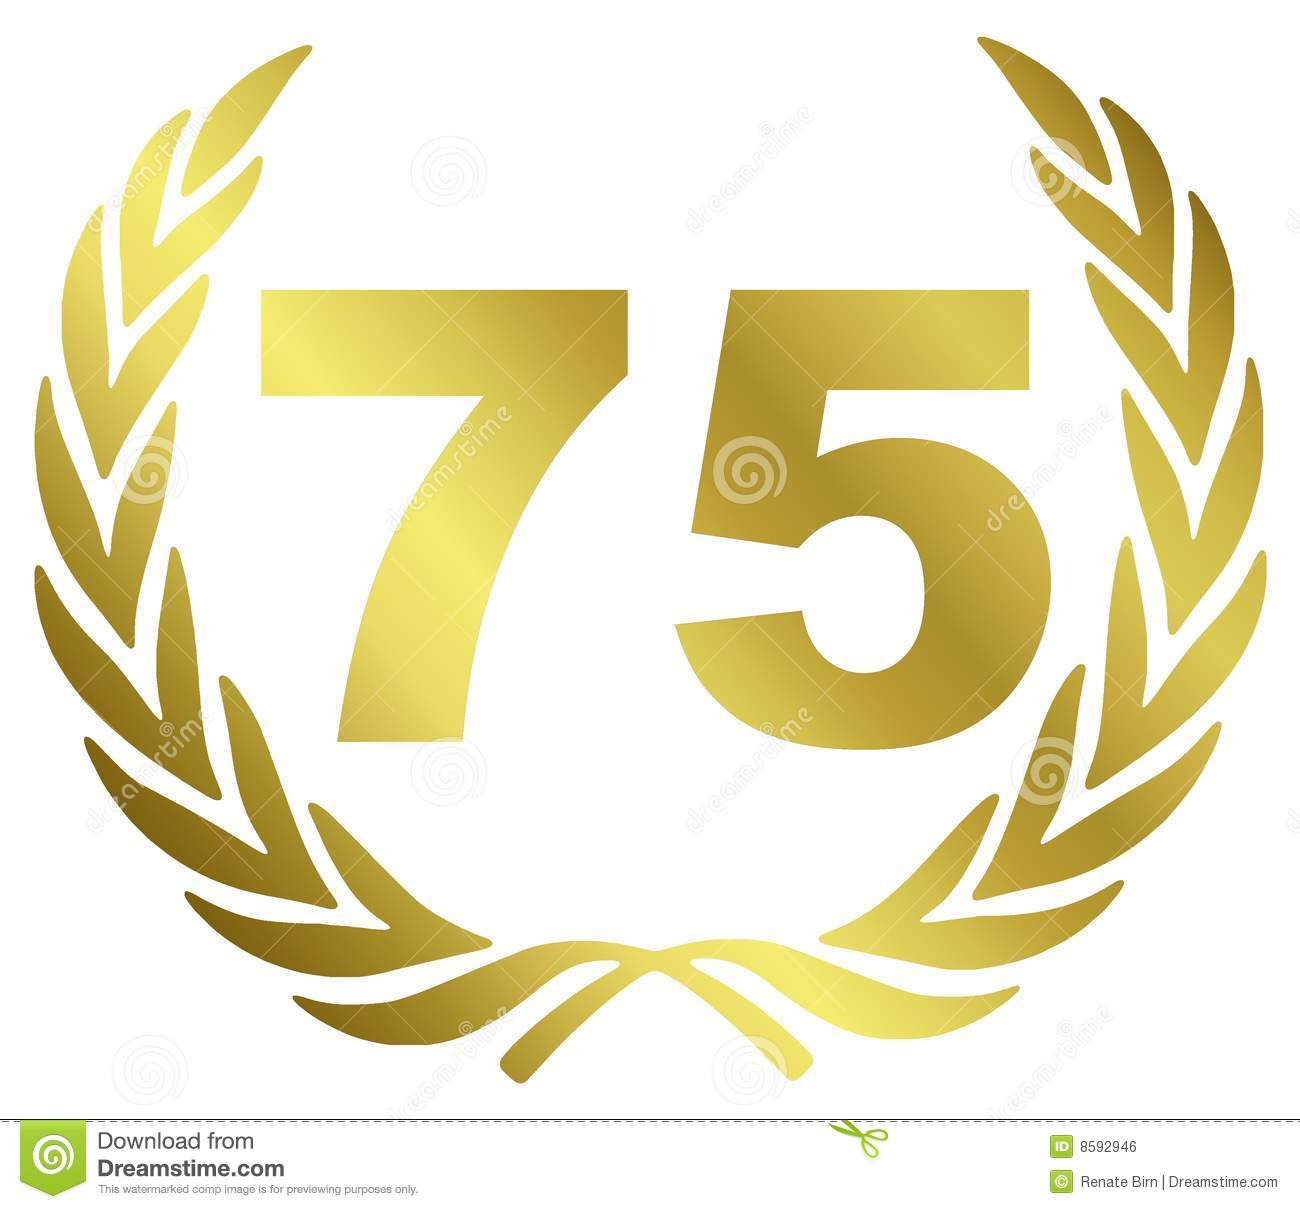 75 Anniversary Royalty Free Stock Image - Image: 8592946